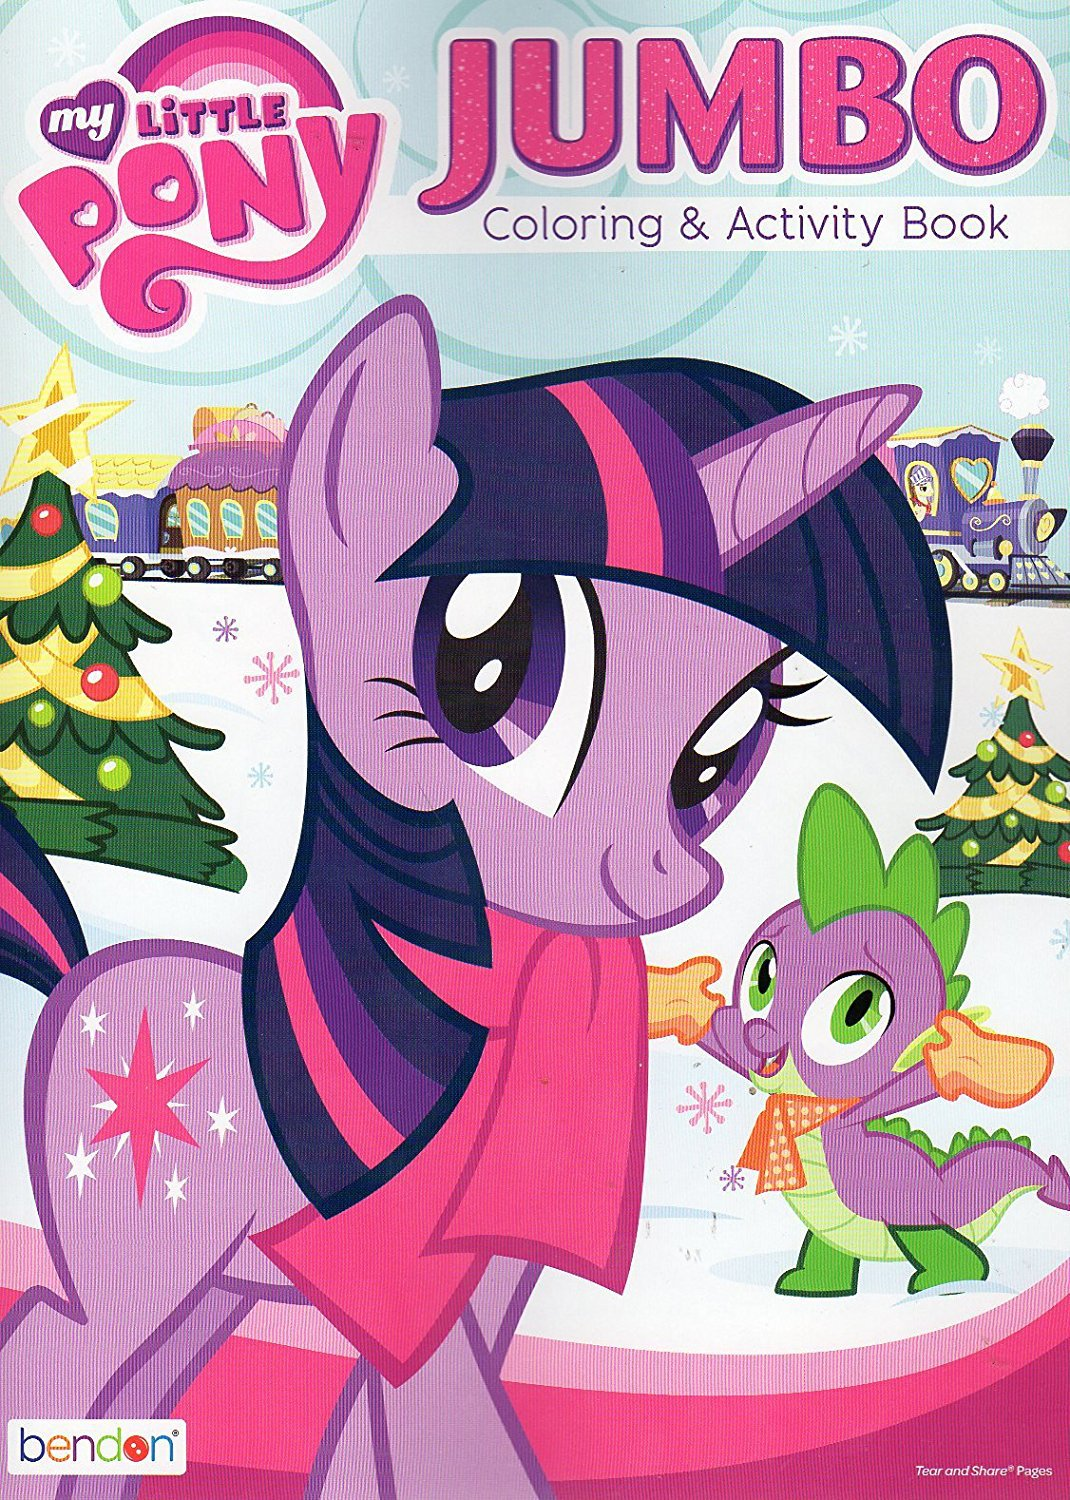 My Little Pony Jumbo Coloring and Activity Book - Christmas Holiday